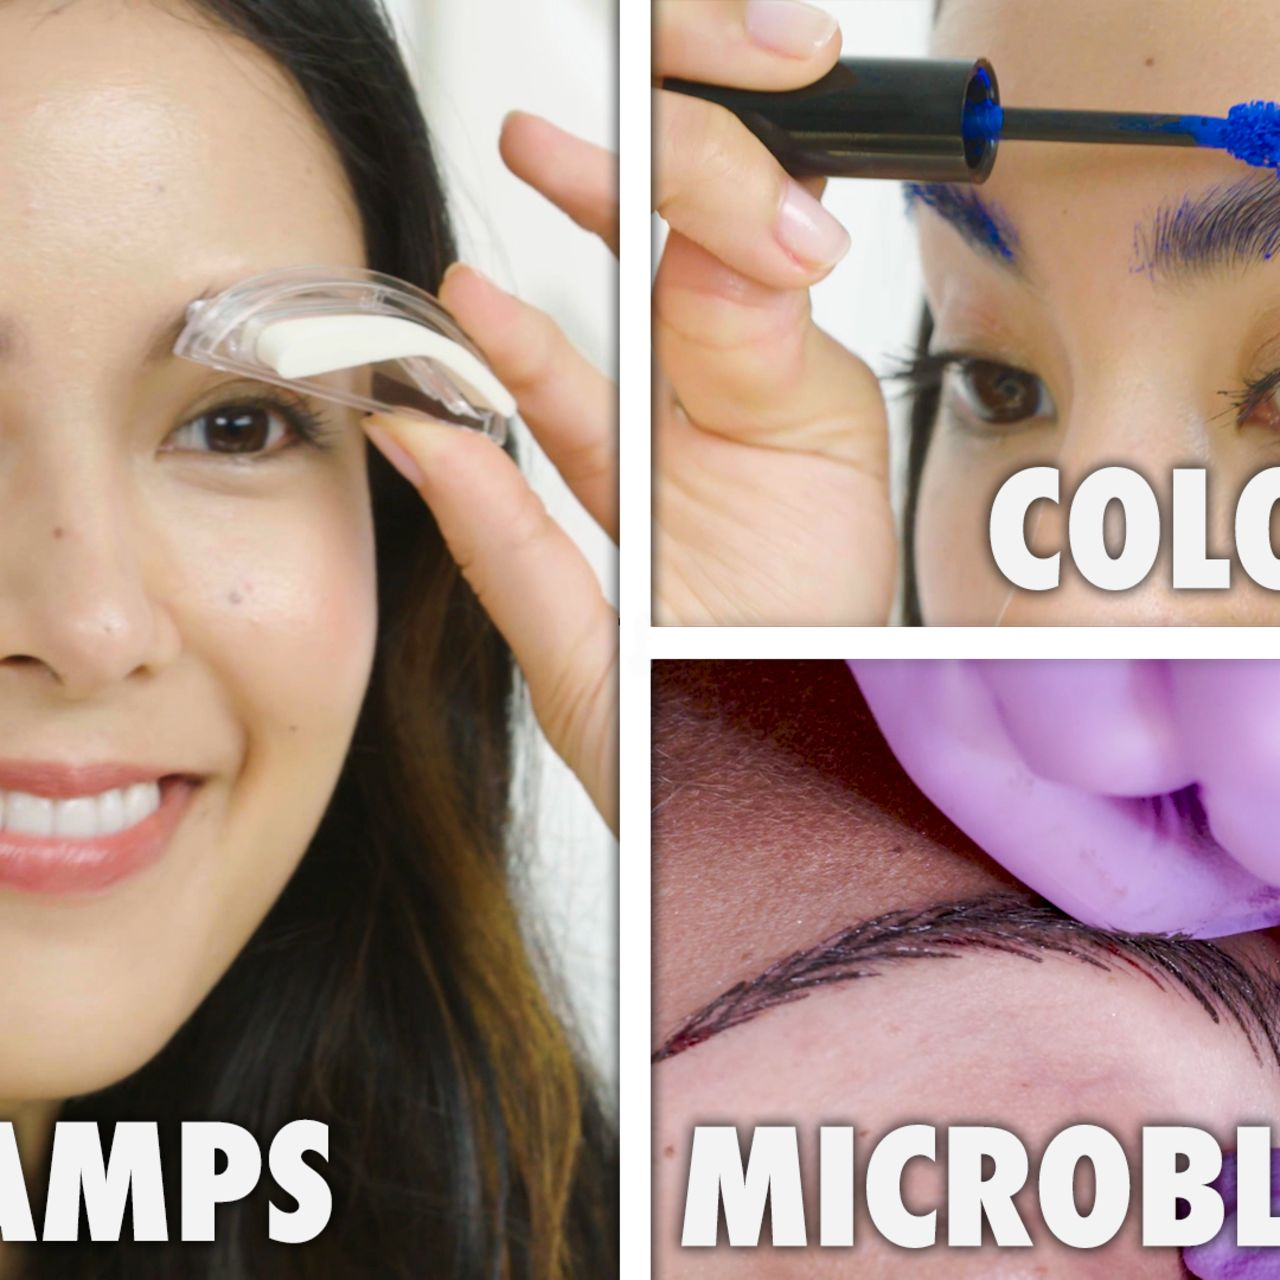 Allure - Beauty Tips, Trends & Product Reviews | Allure